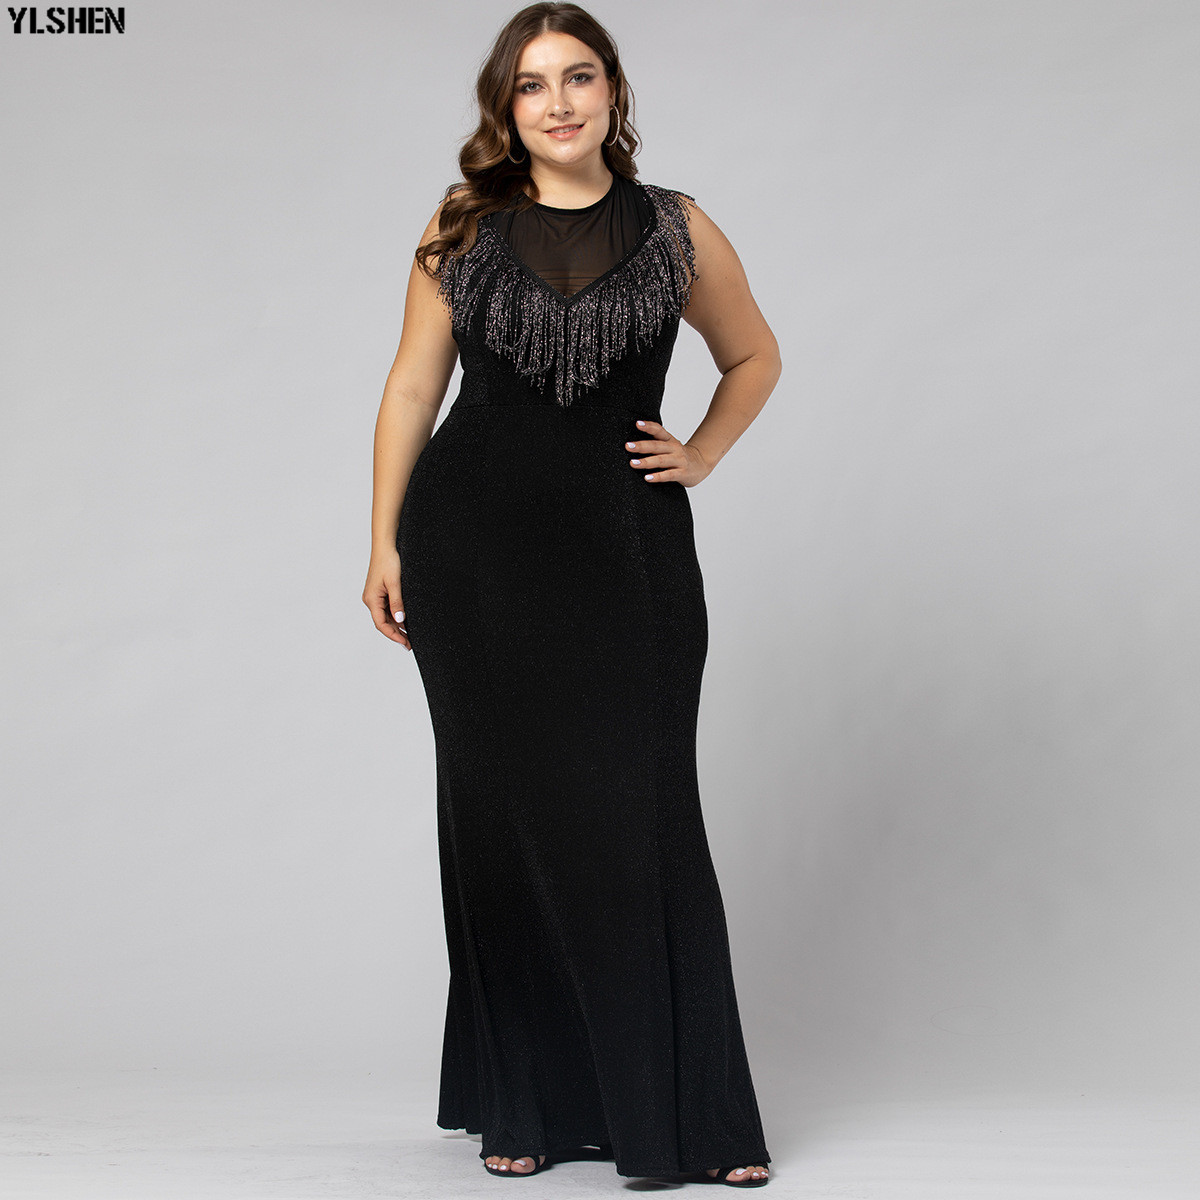 Black Evening Party Dress African Dresses For Women Plus Size Long Maxi Africa Dress African Clothes Robe Africaine Femme 2019